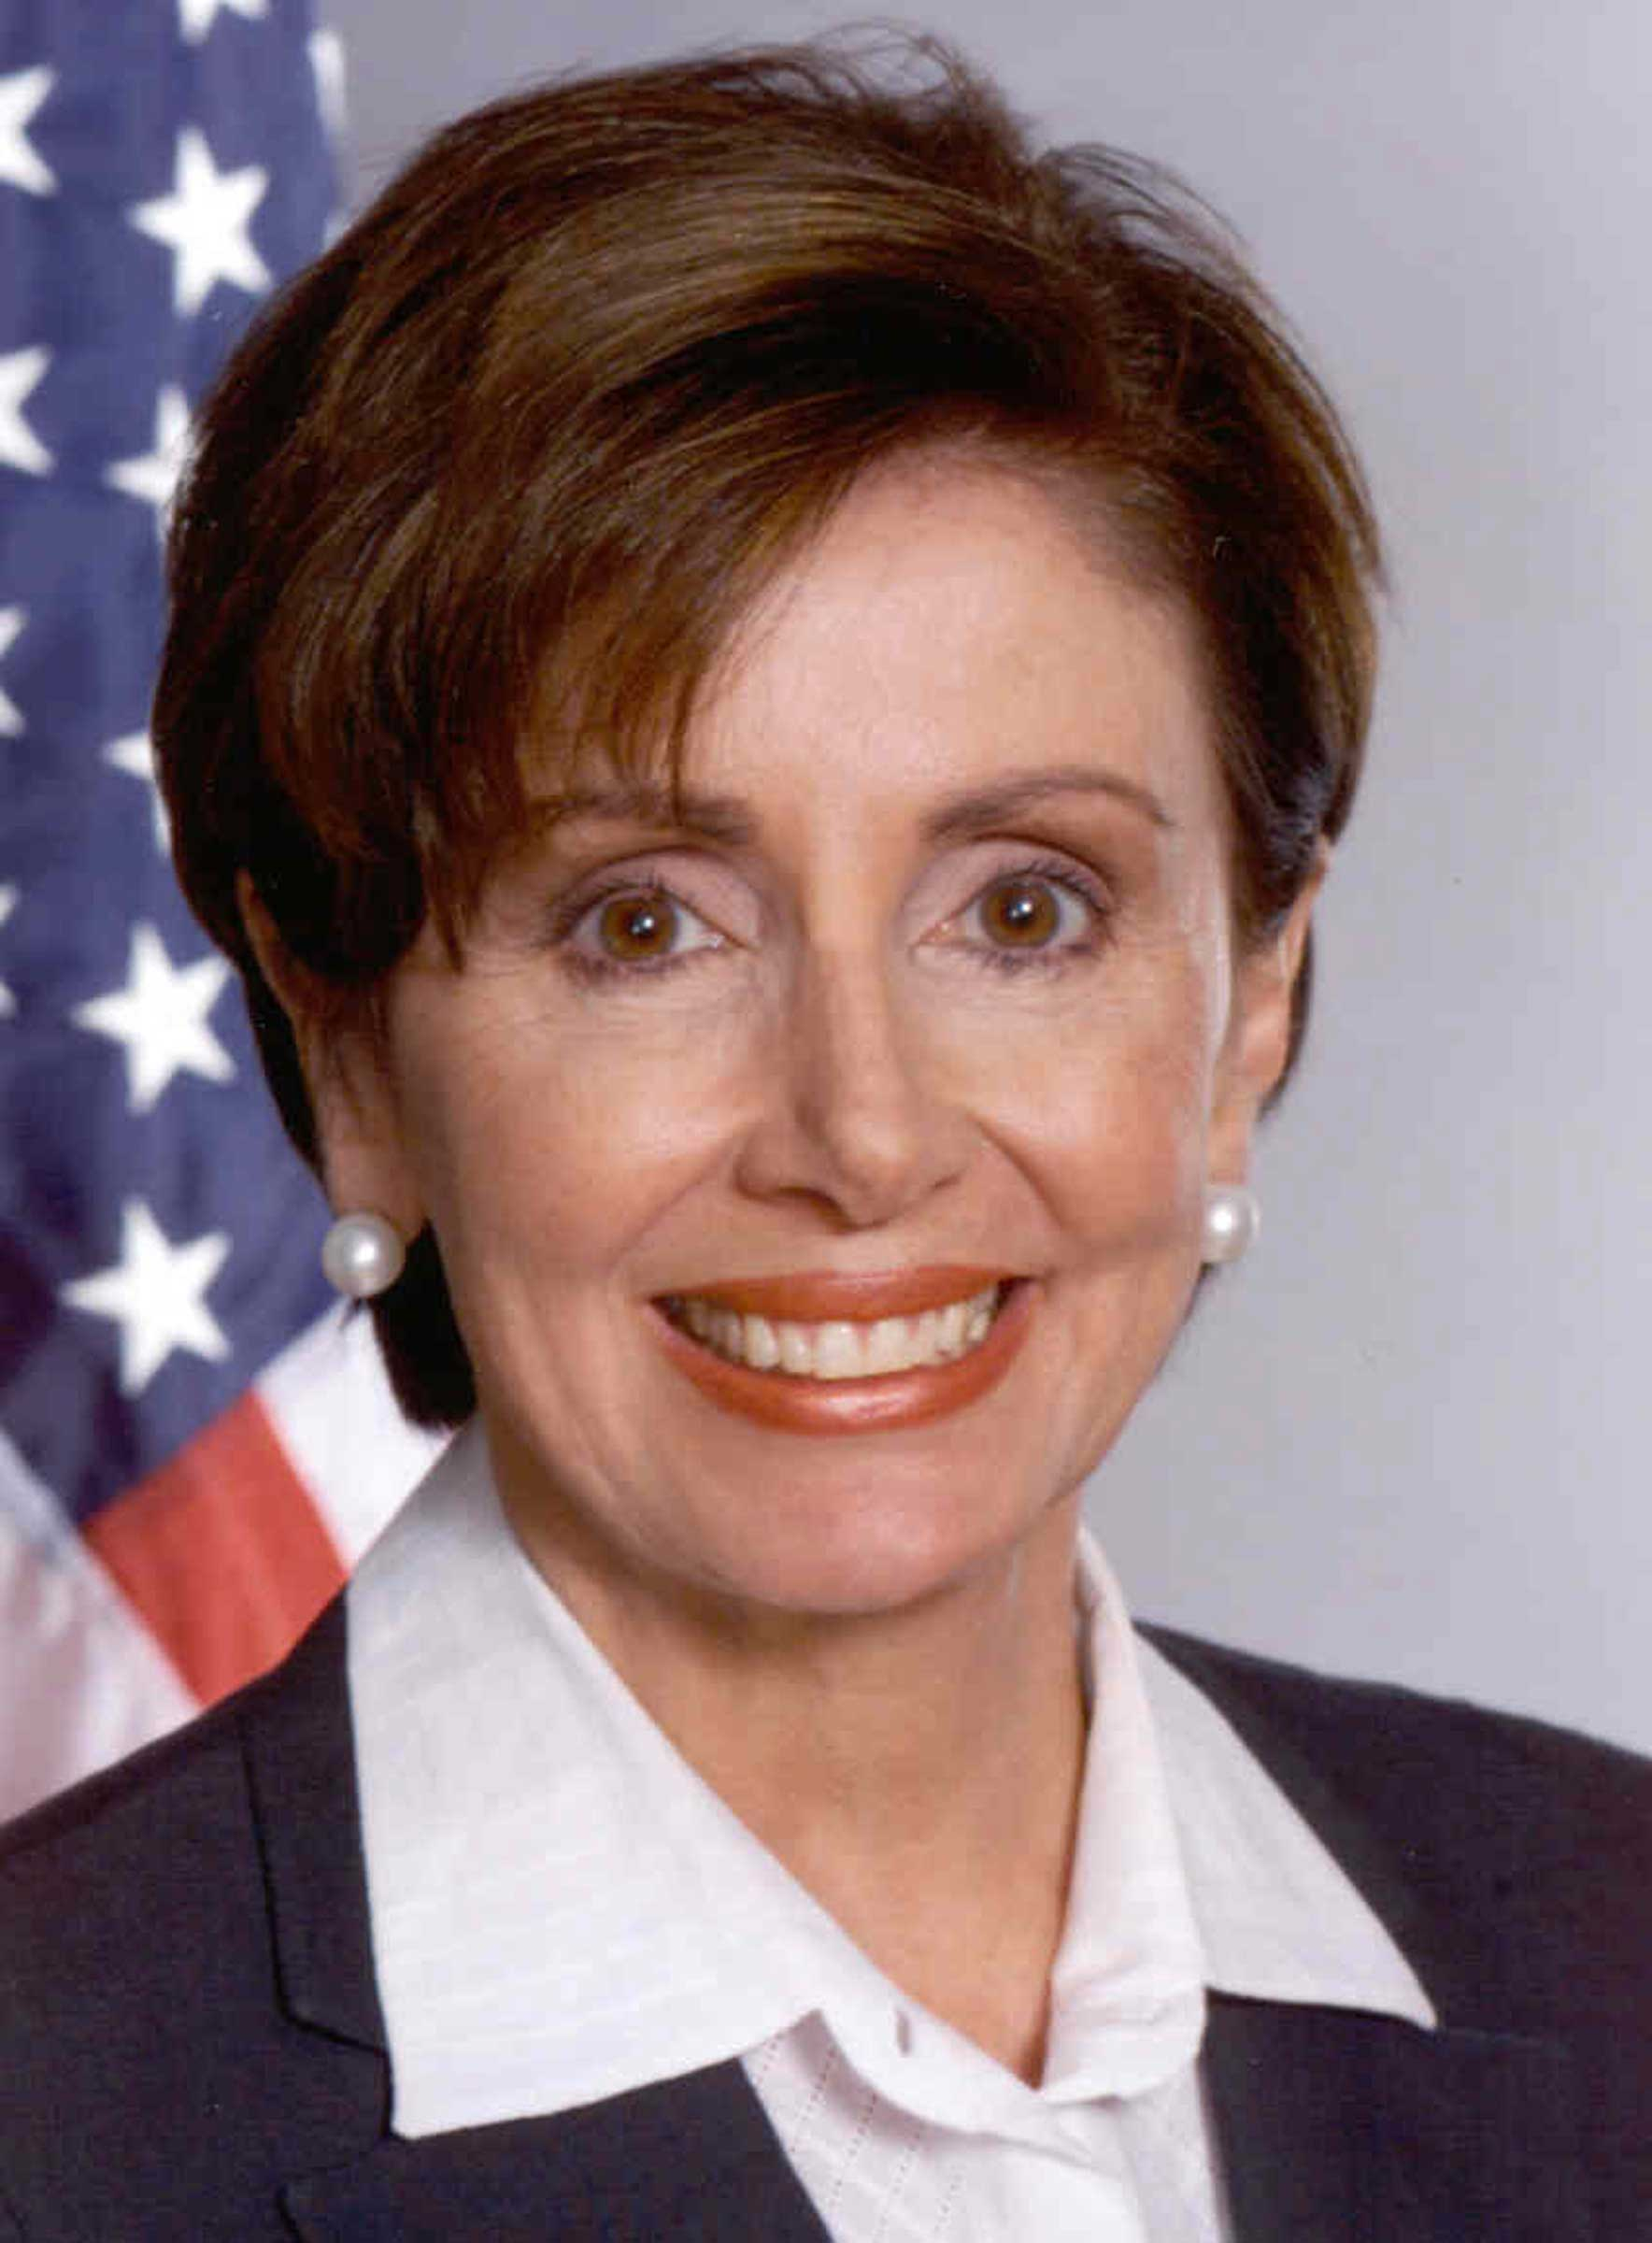 File:Nancy Pelosi official portrait.jpg - Wikimedia Commons